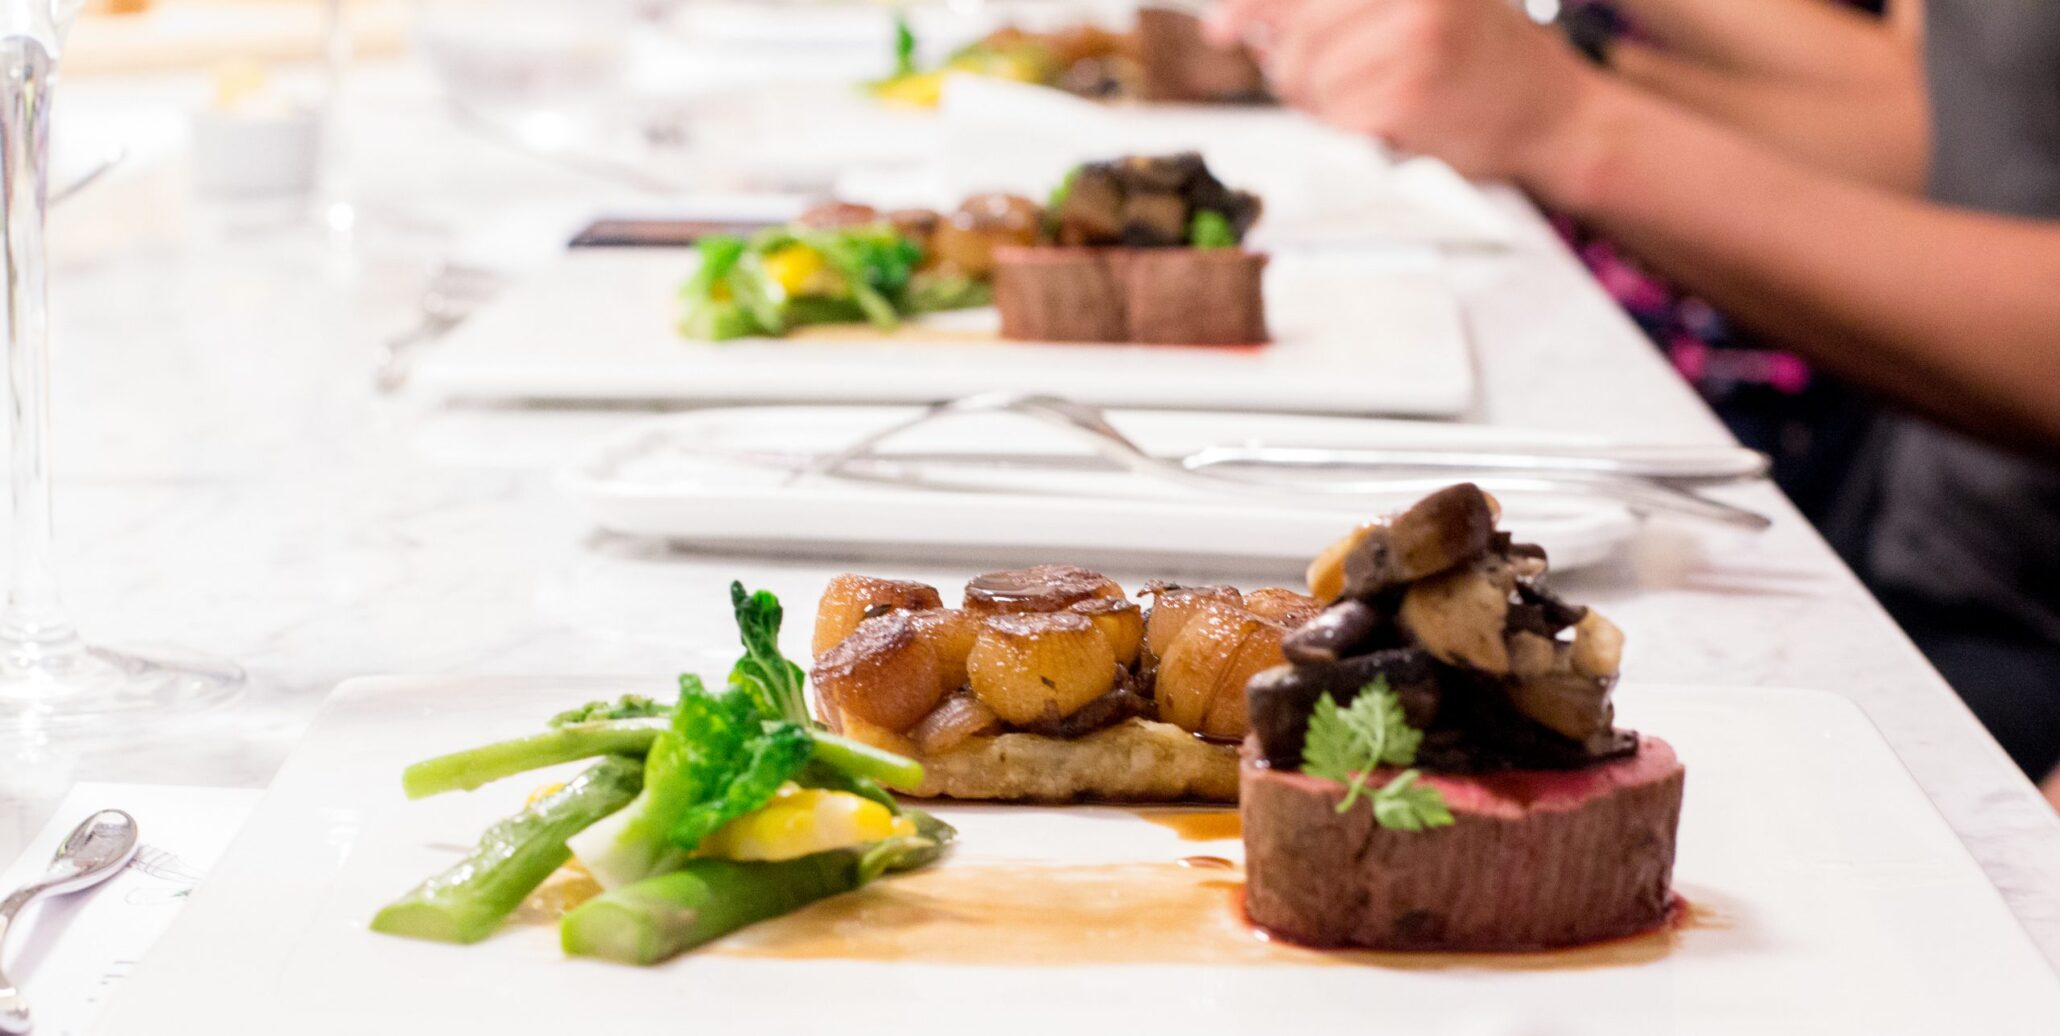 plated food on white table